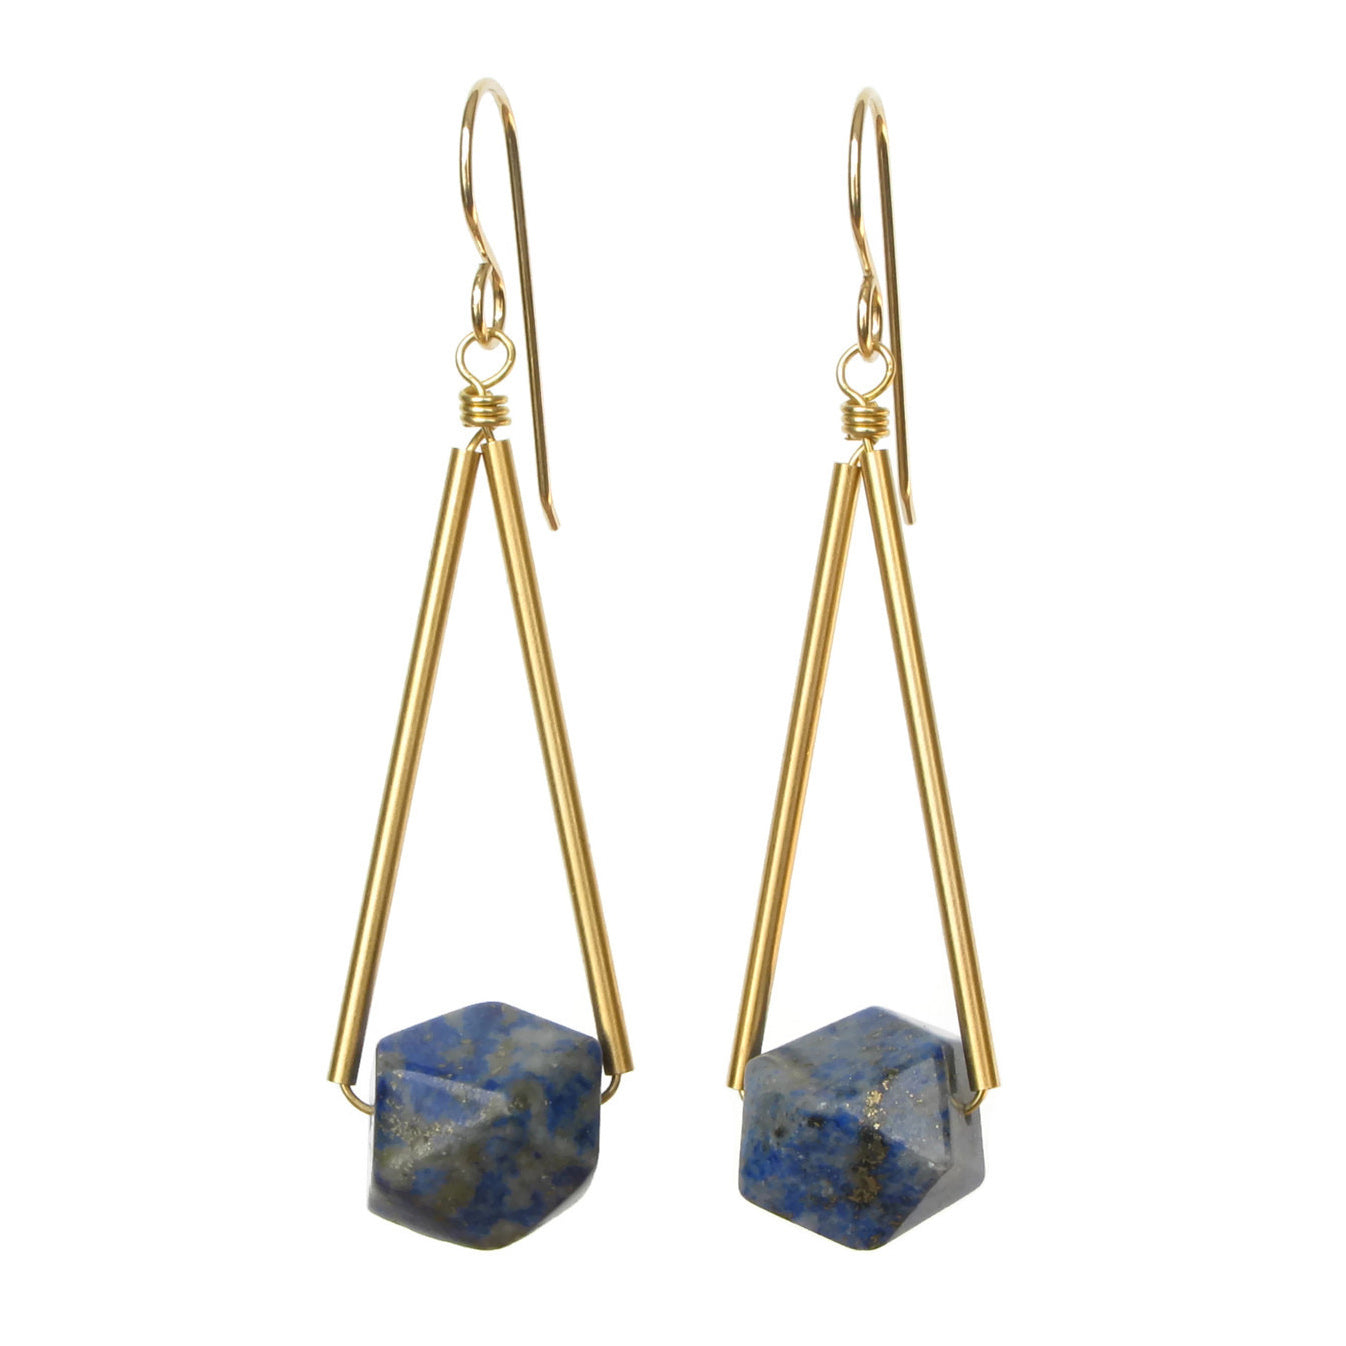 Sana Earrings - Lapis Lazuli